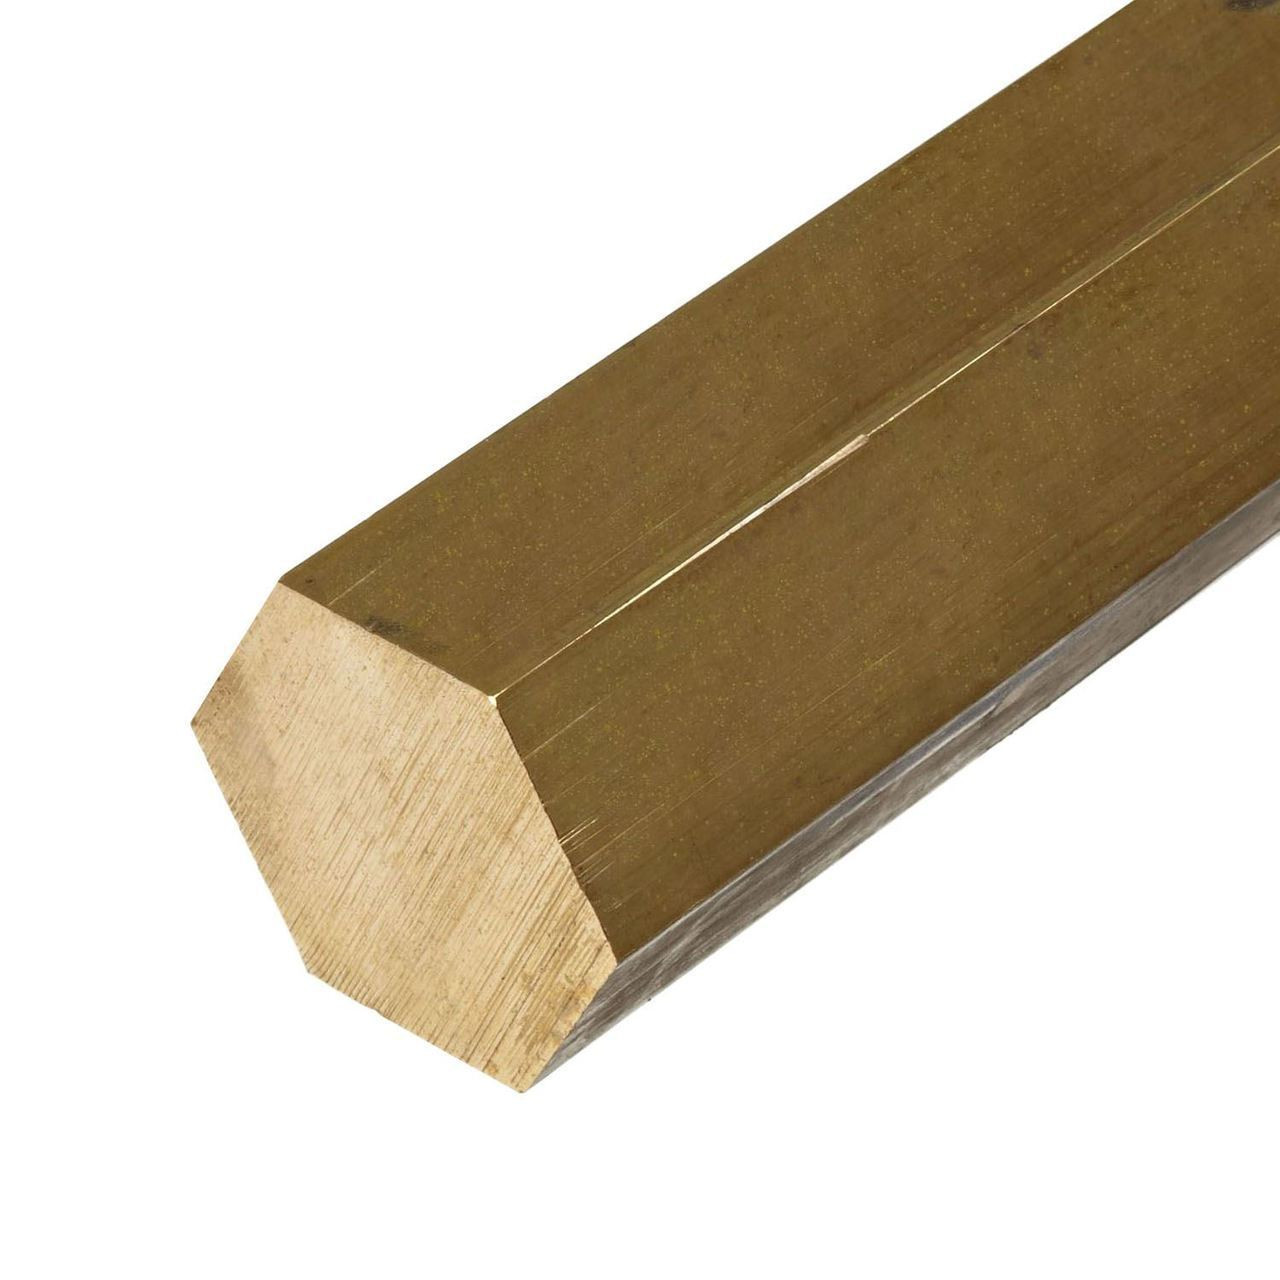 C360 Brass Hexagon Bar, 0.500 (1/2 inch) x 36 inches